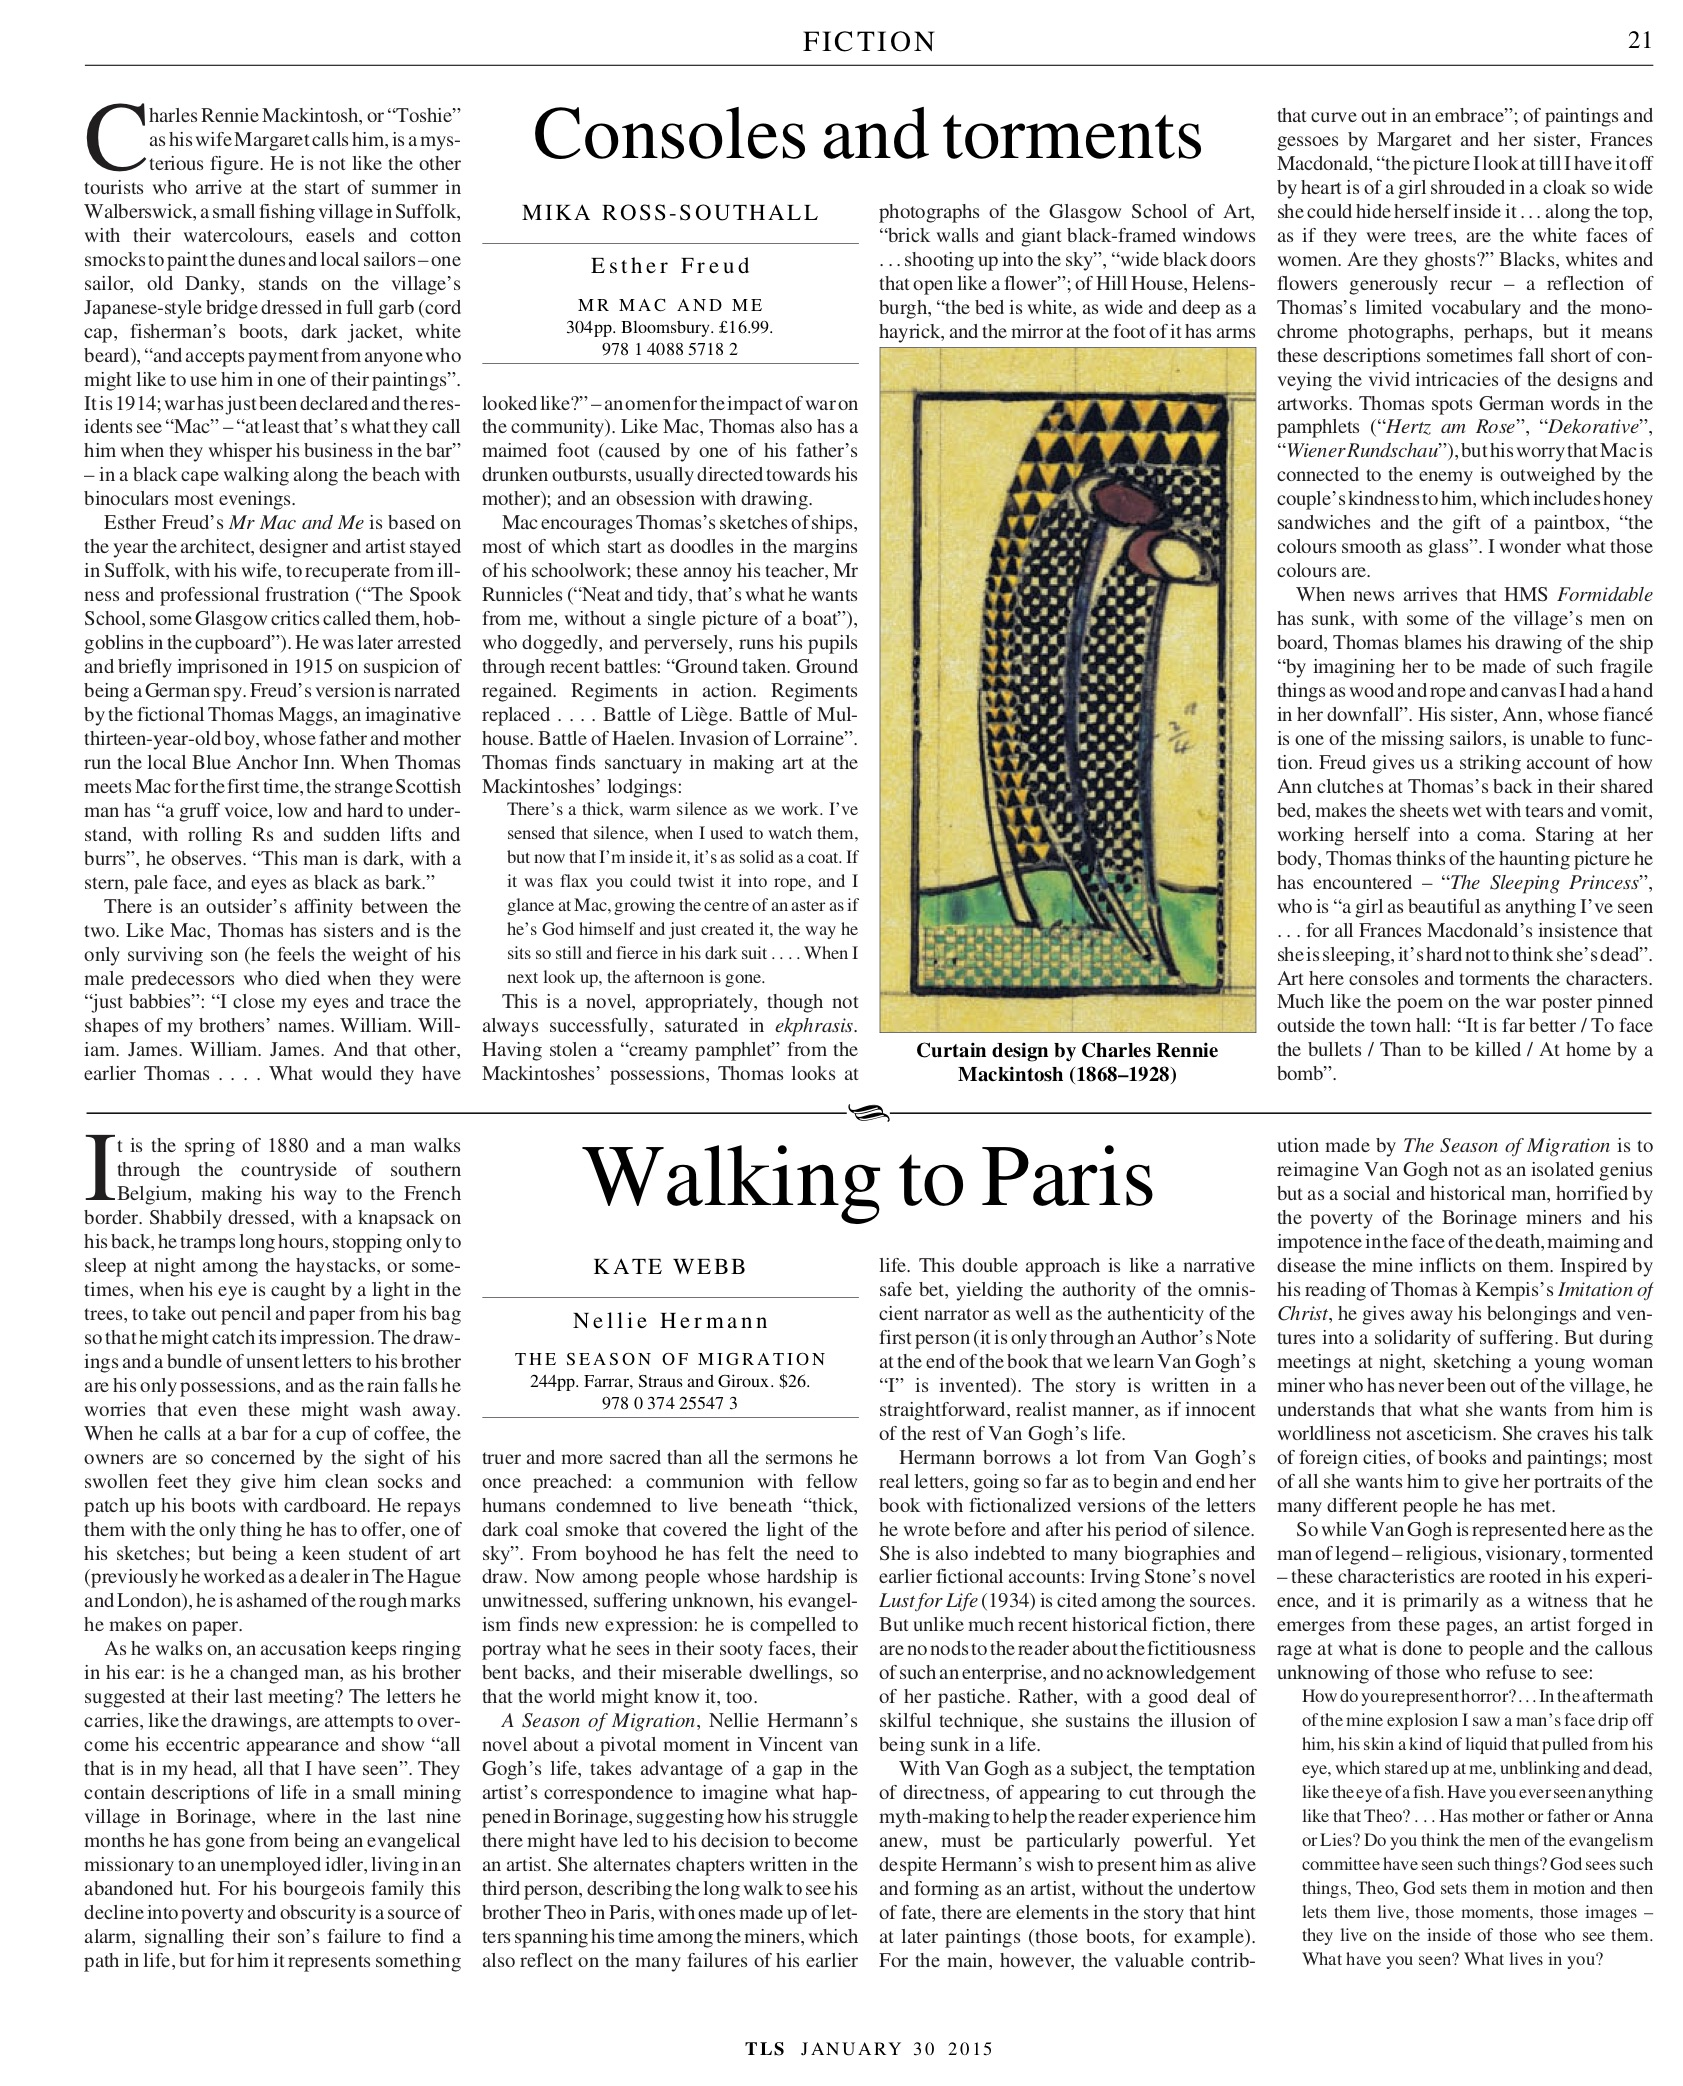 Consoles and torments, Esther Freud, Published in The Times Literary Supplement, January 30, 2015